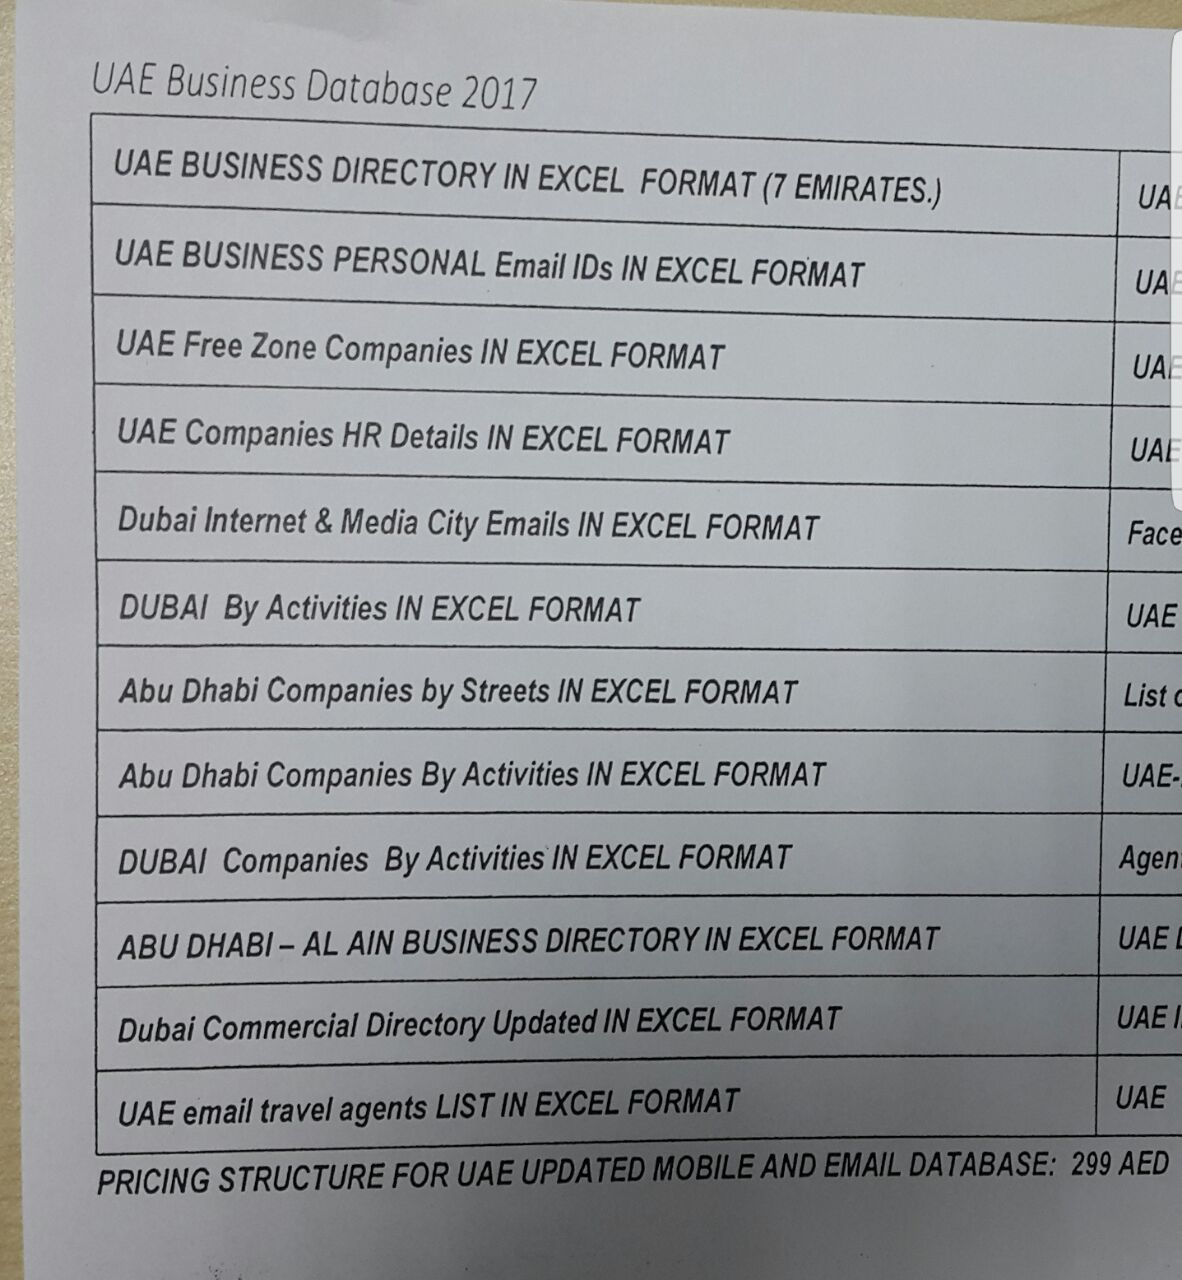 100,000 UAE Executive Business Contacts + 300,000 Executive Mobile Numbers Numbers